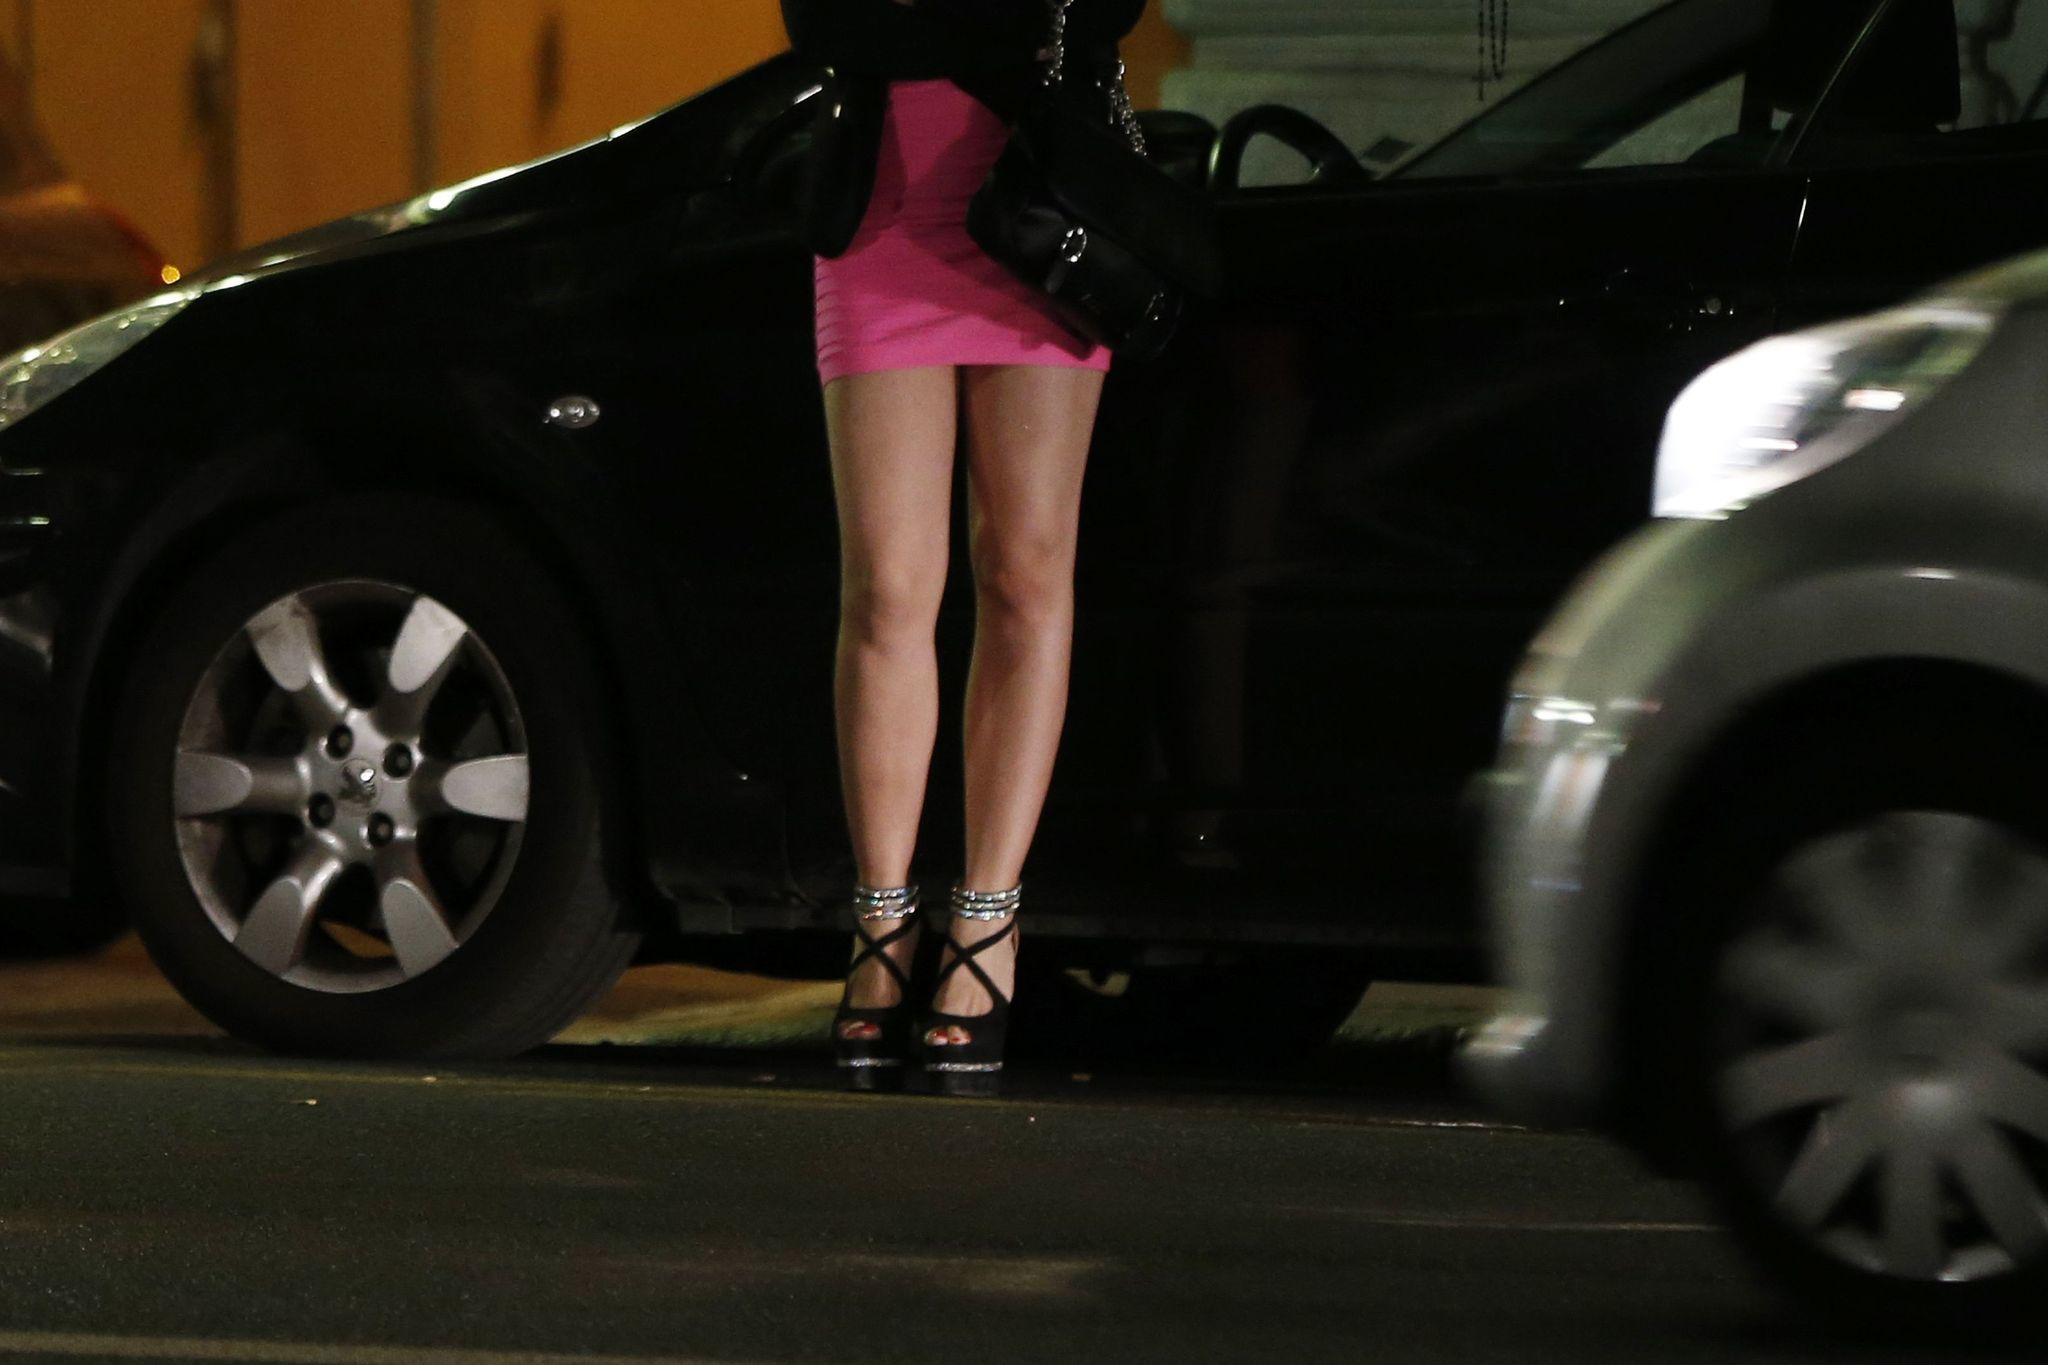 France declared war on prostitution, but not on prostitutes